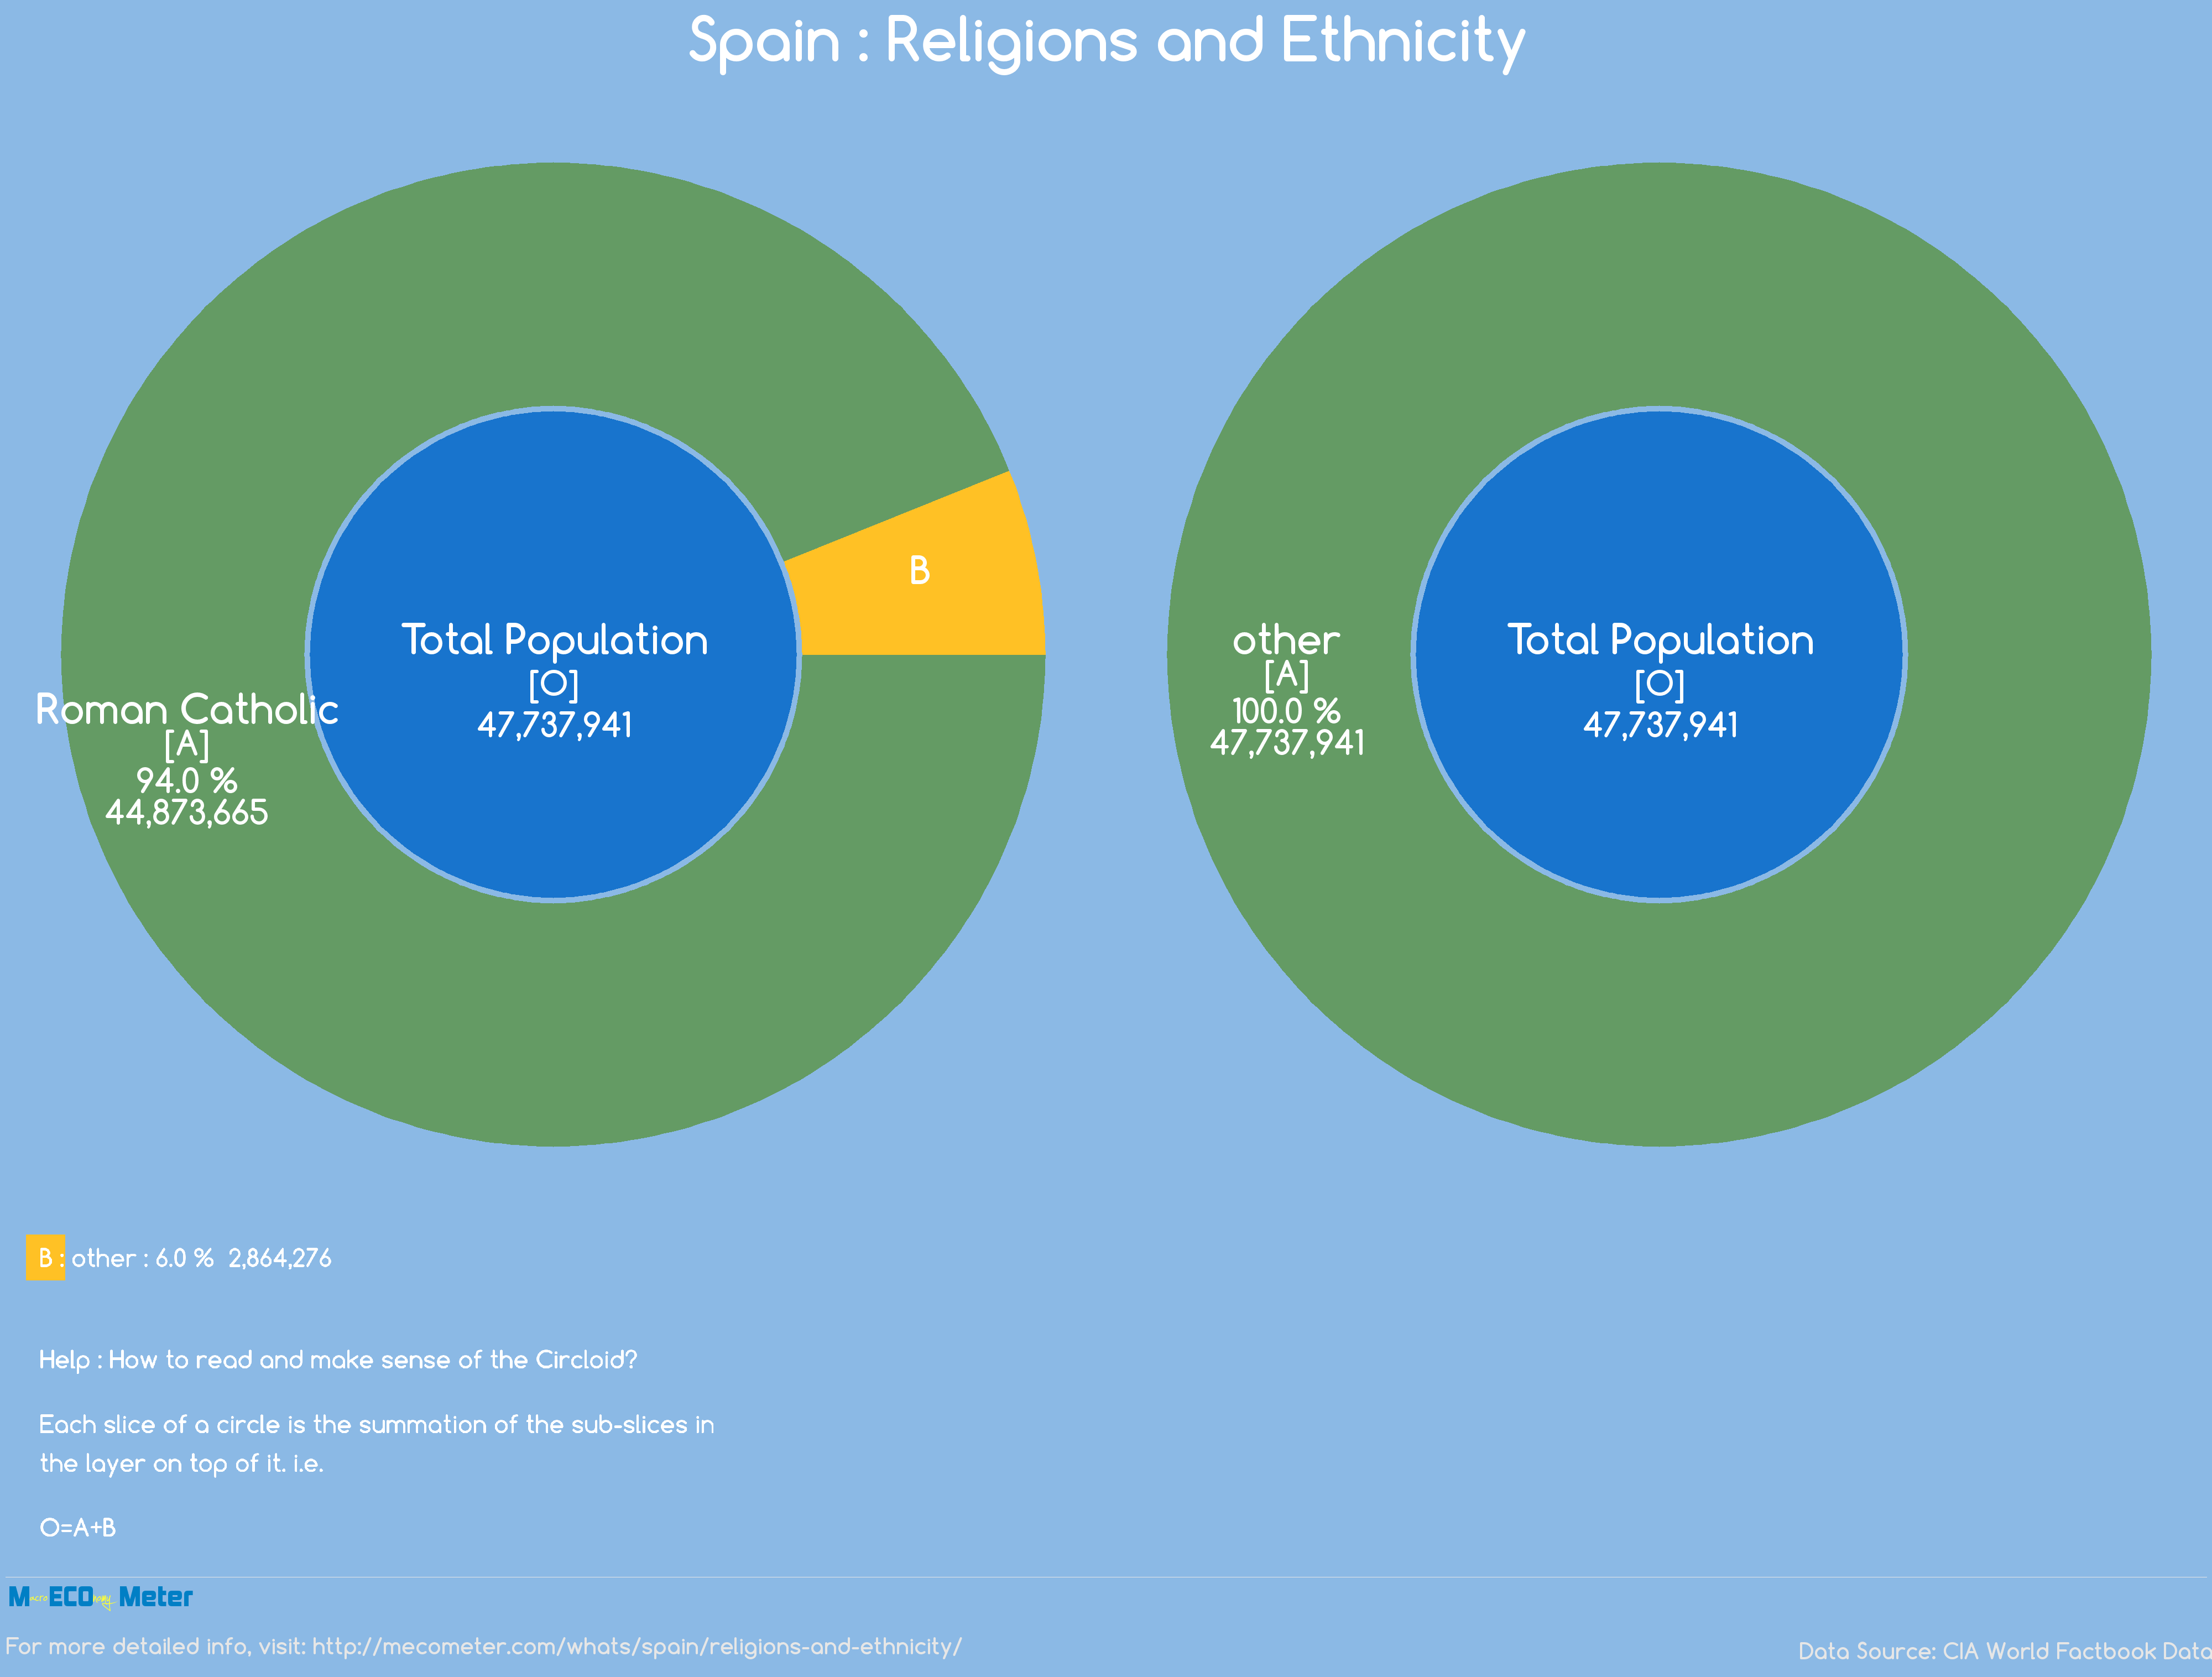 Spain : Religions and Ethnicity